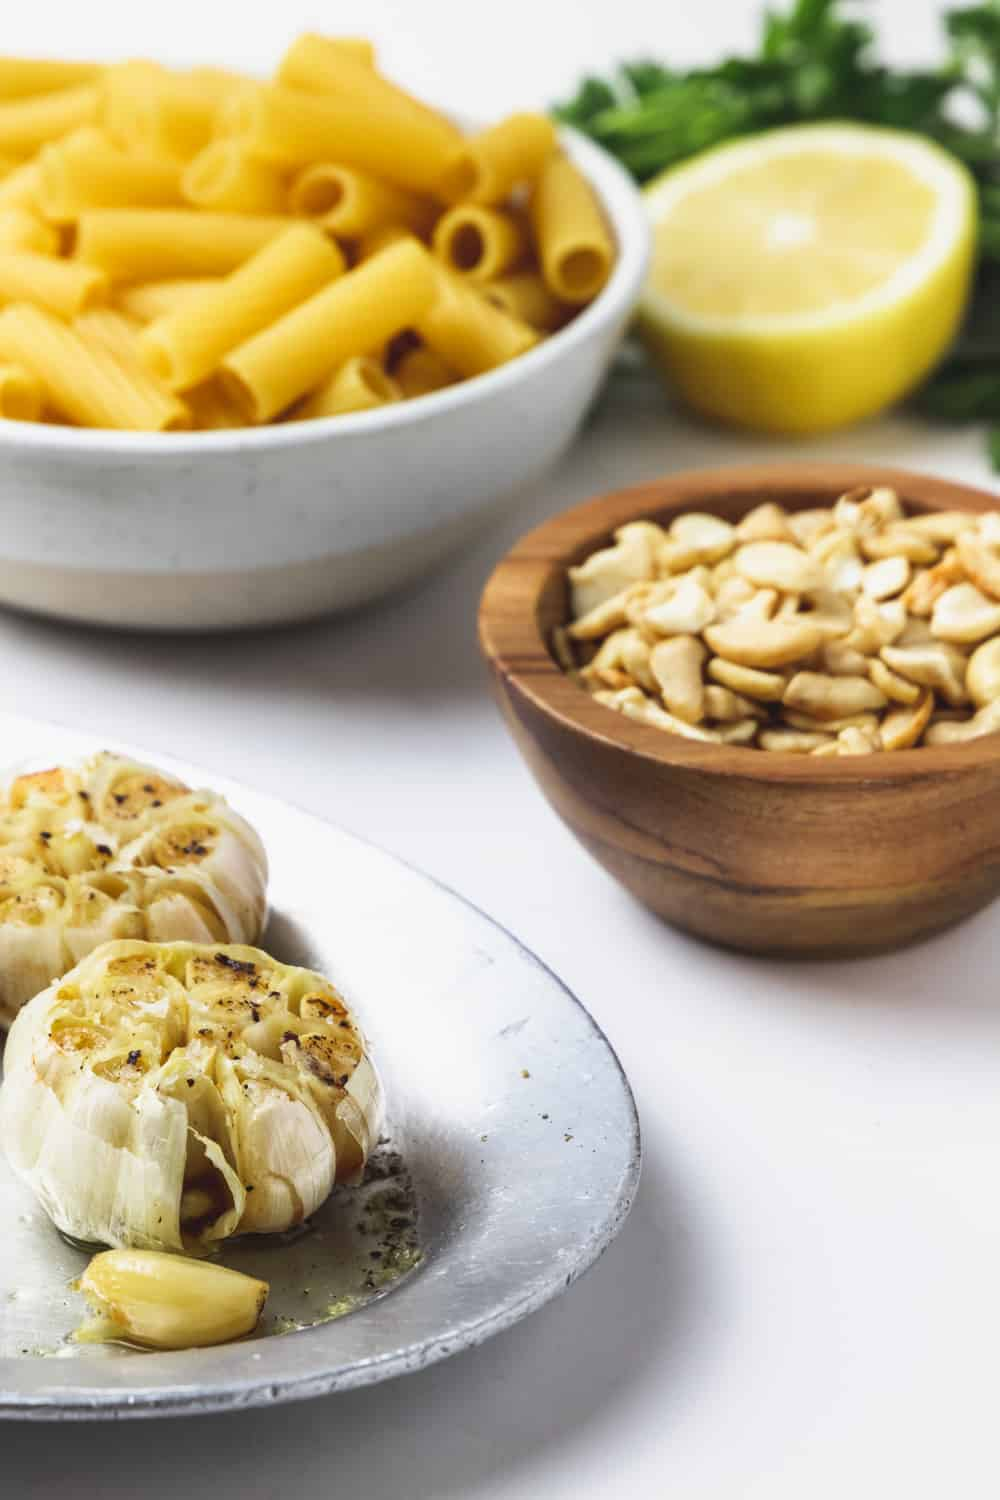 ingredients for creamy vegan roasted garlic rigatoni